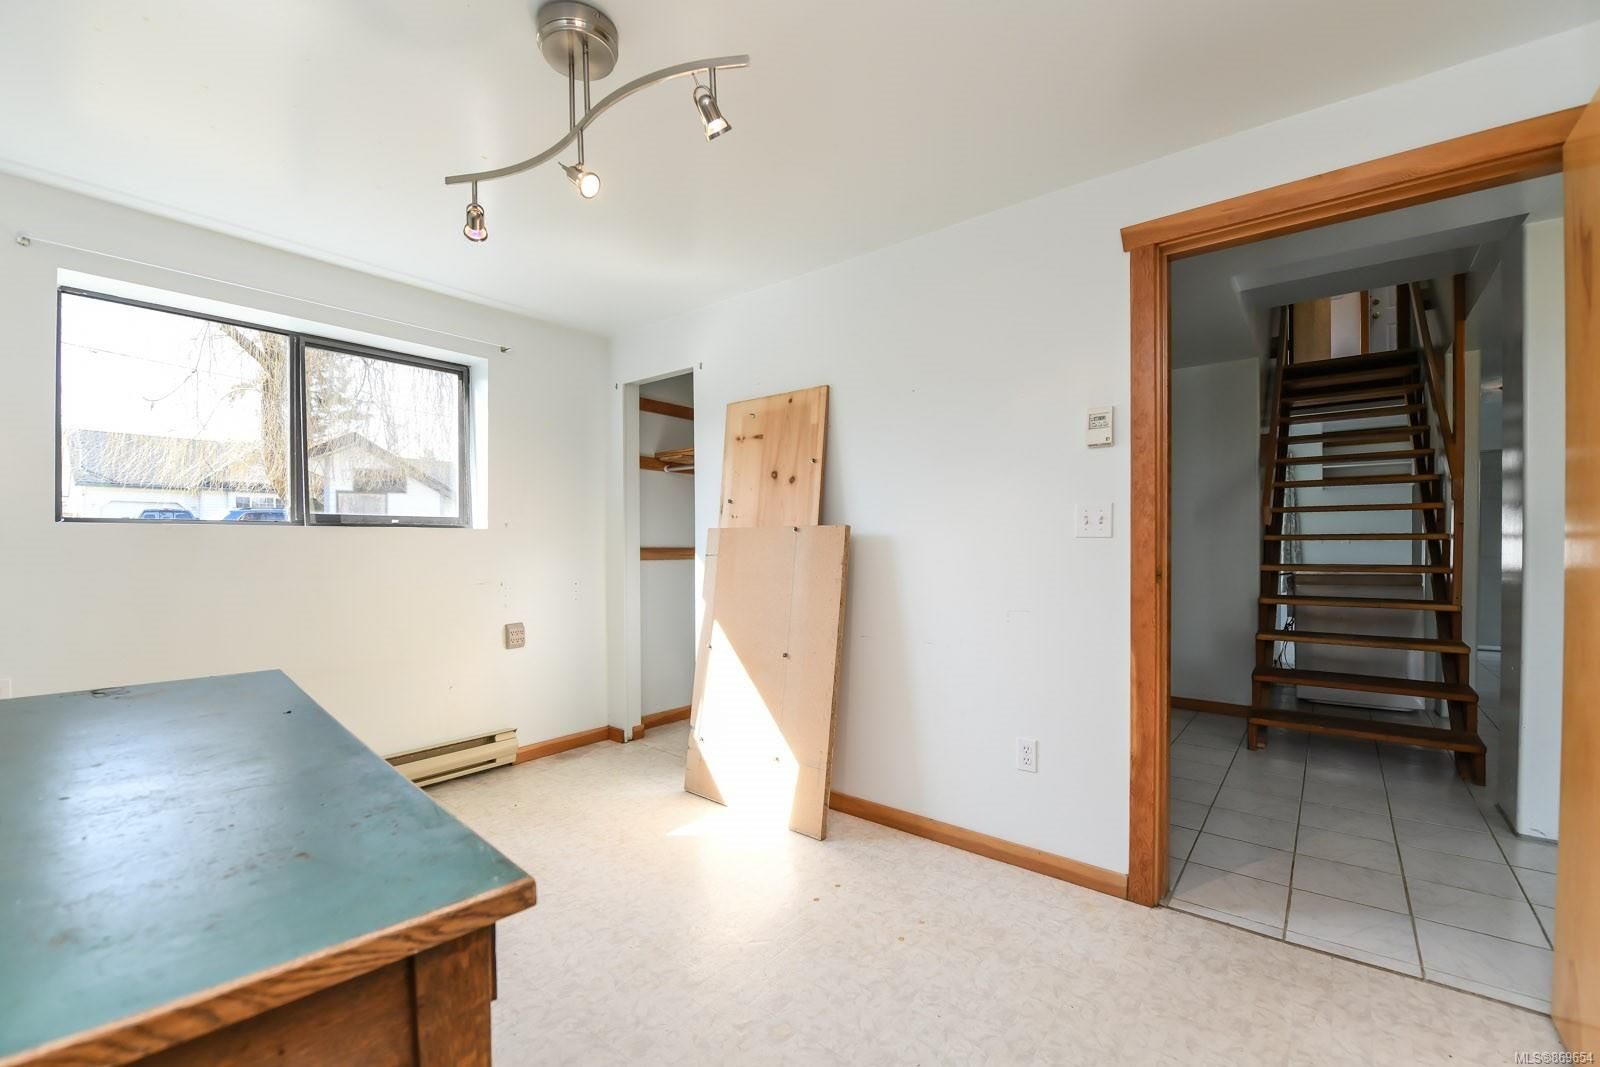 Photo 20: Photos: 4712 Cumberland Rd in : CV Cumberland House for sale (Comox Valley)  : MLS®# 869654